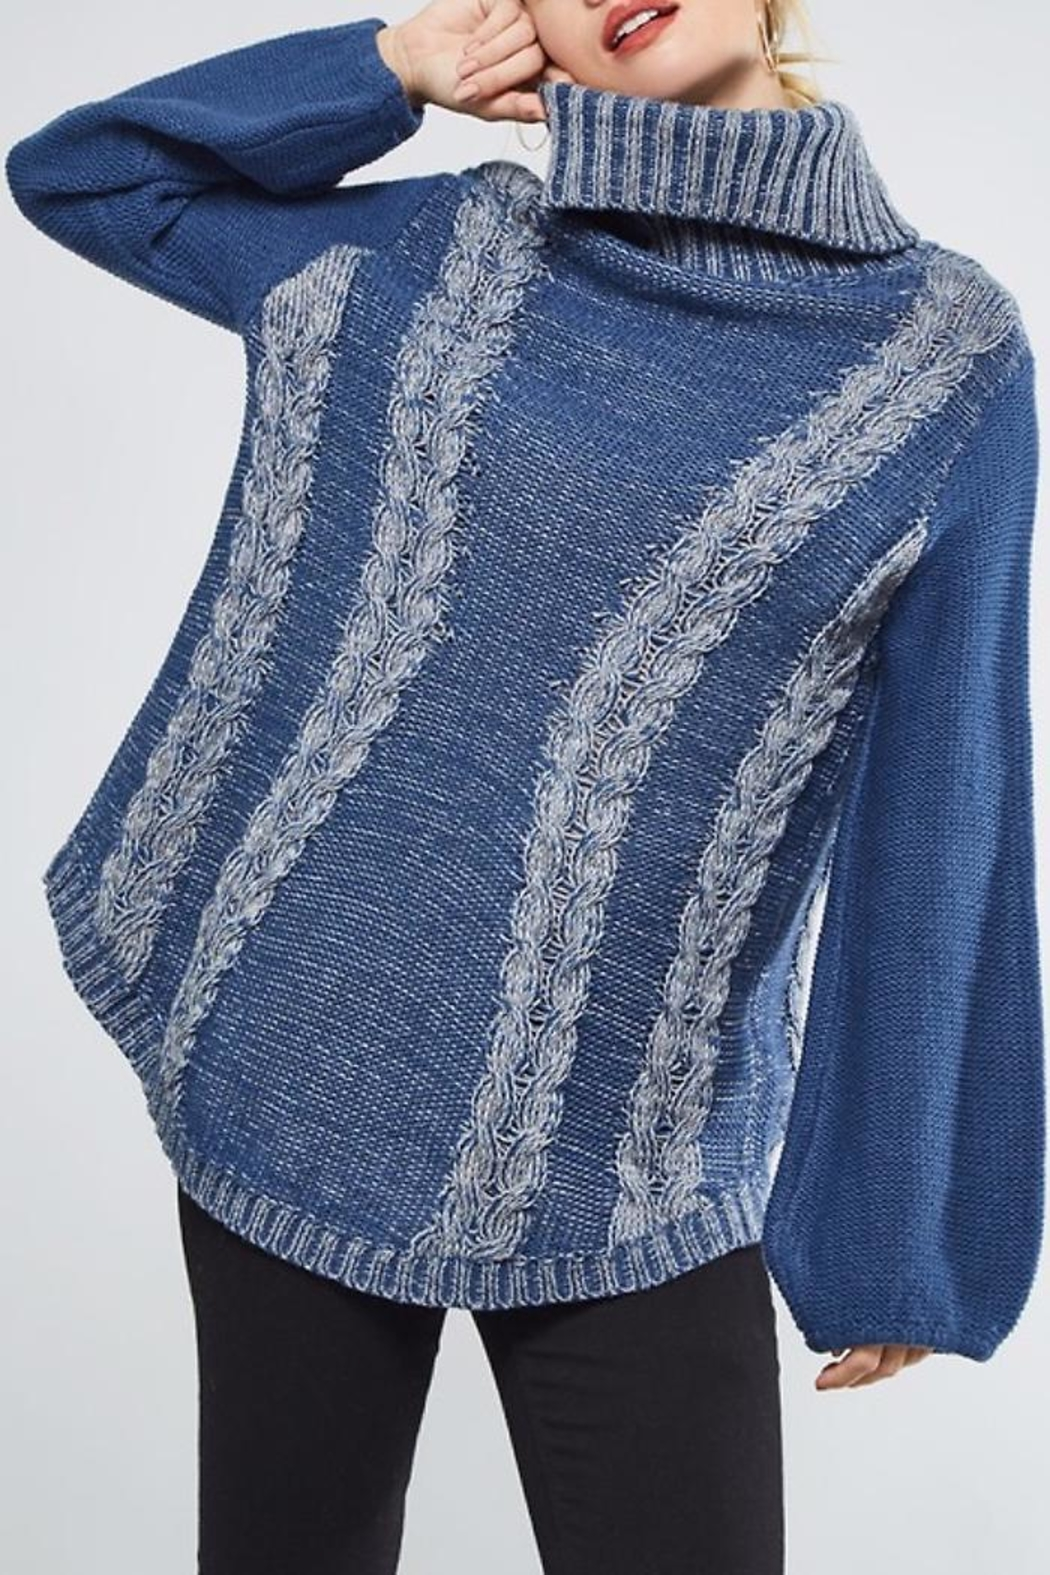 People Outfitter Heartened Blue Sweater - Back Cropped Image